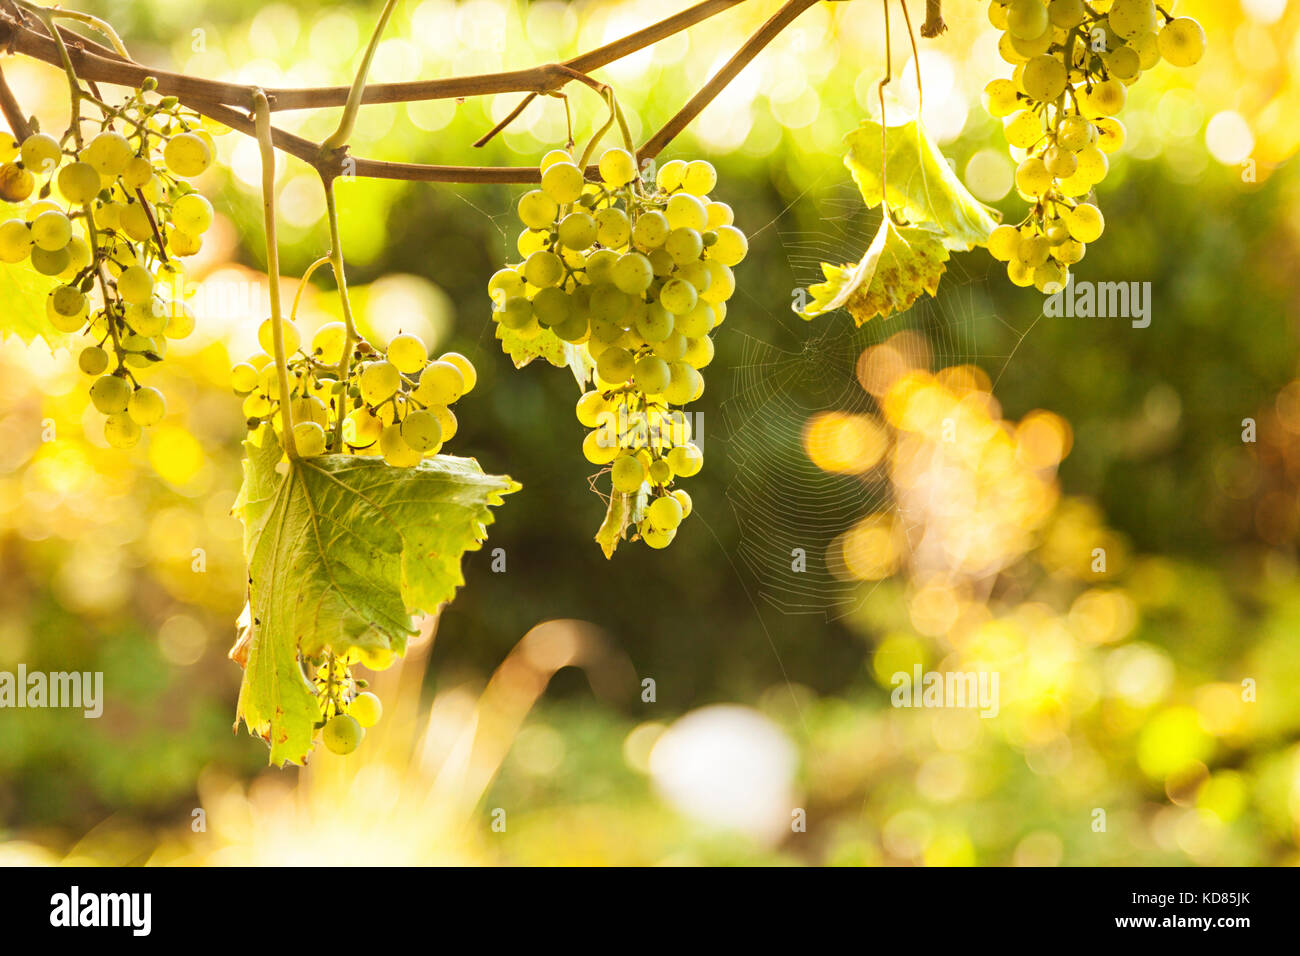 Ripe grapes hanging from vines, backlighting from sun - Stock Image